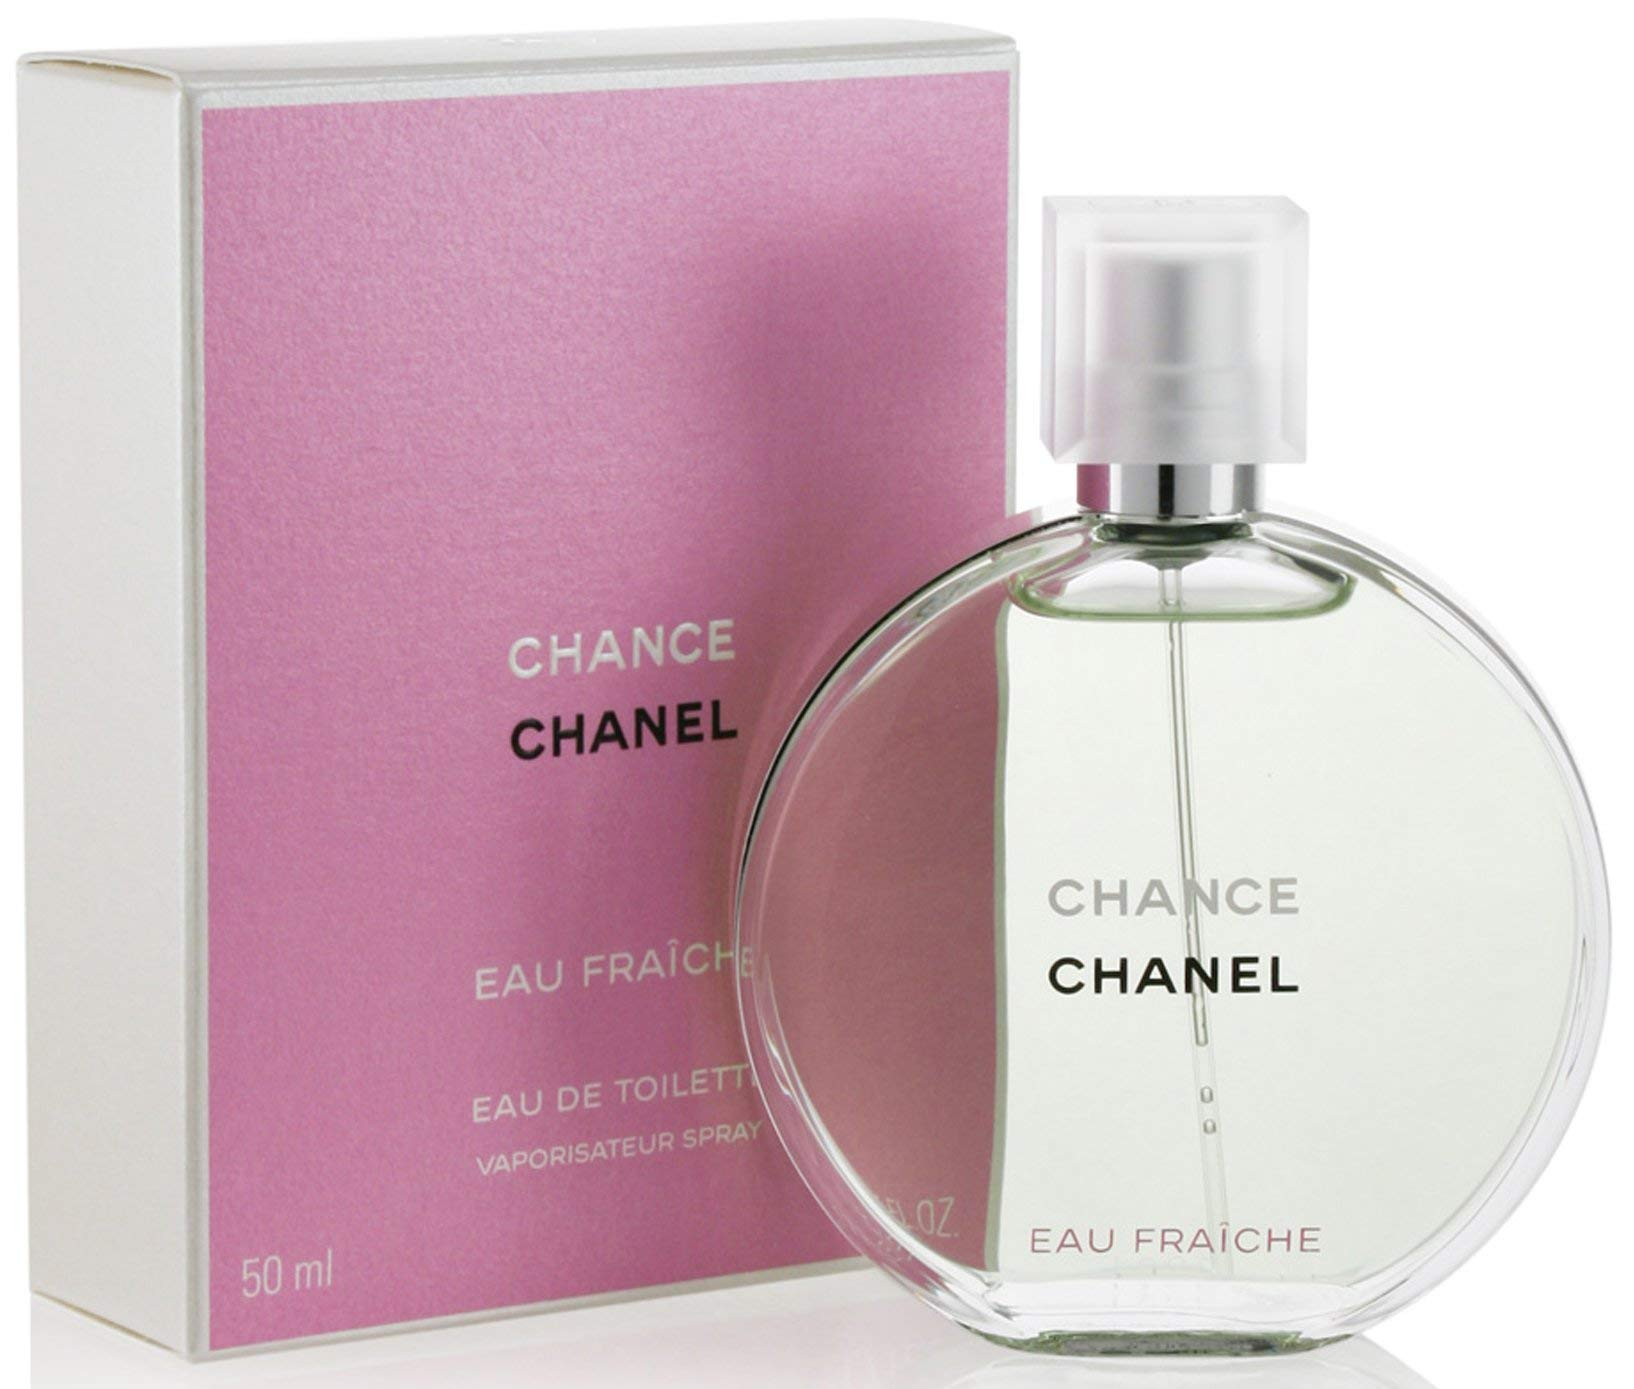 Chancè Chanèl Eau Fraiche Eau De Toilette Spray, for Woman EDT 1.7 fl oz, 50 ml by Chanèl